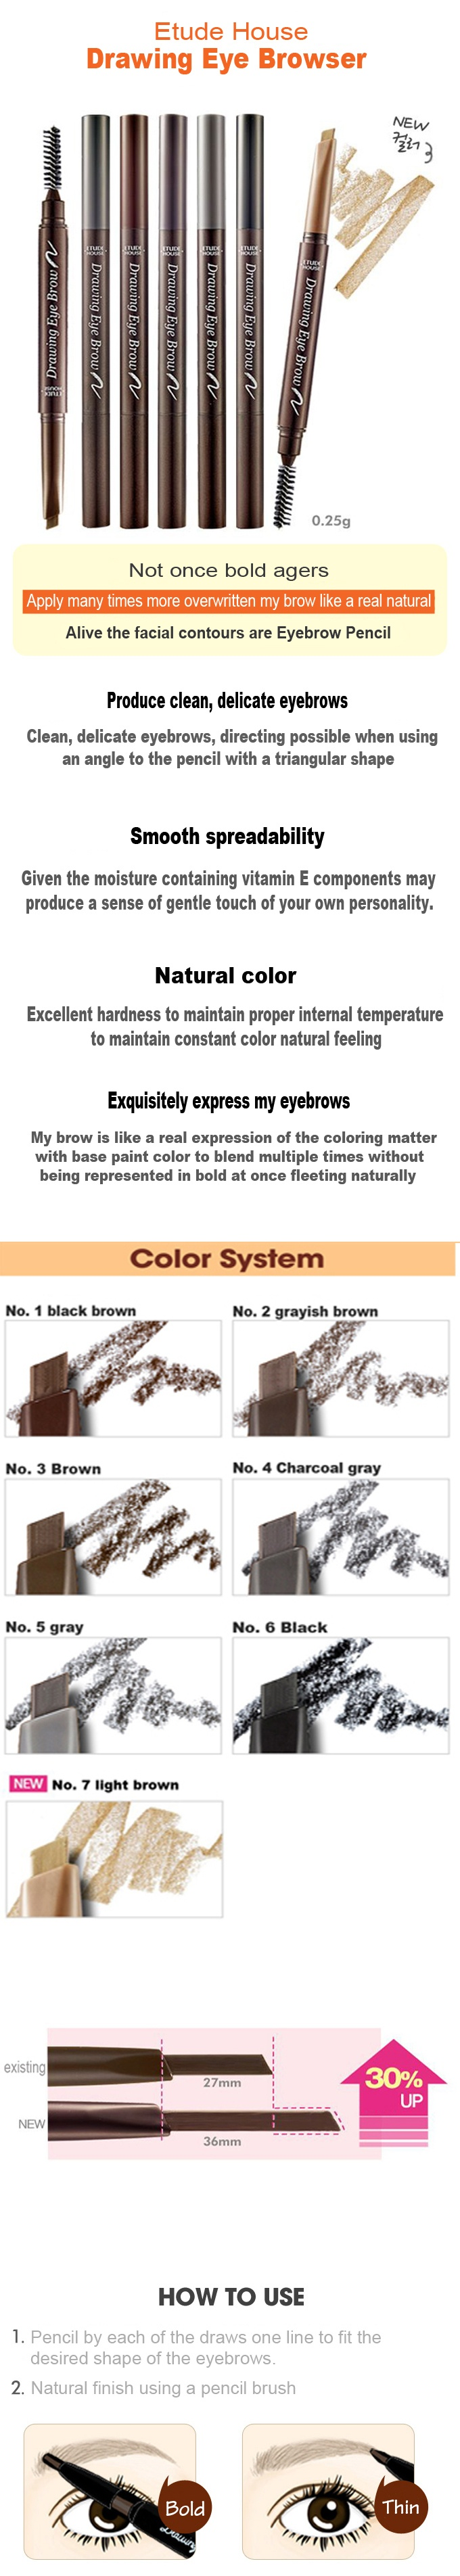 Etuse House 2016 New Drawing Eye Brow 025g 30 Up 3 Brown Eyebrow Specifications Of Intl